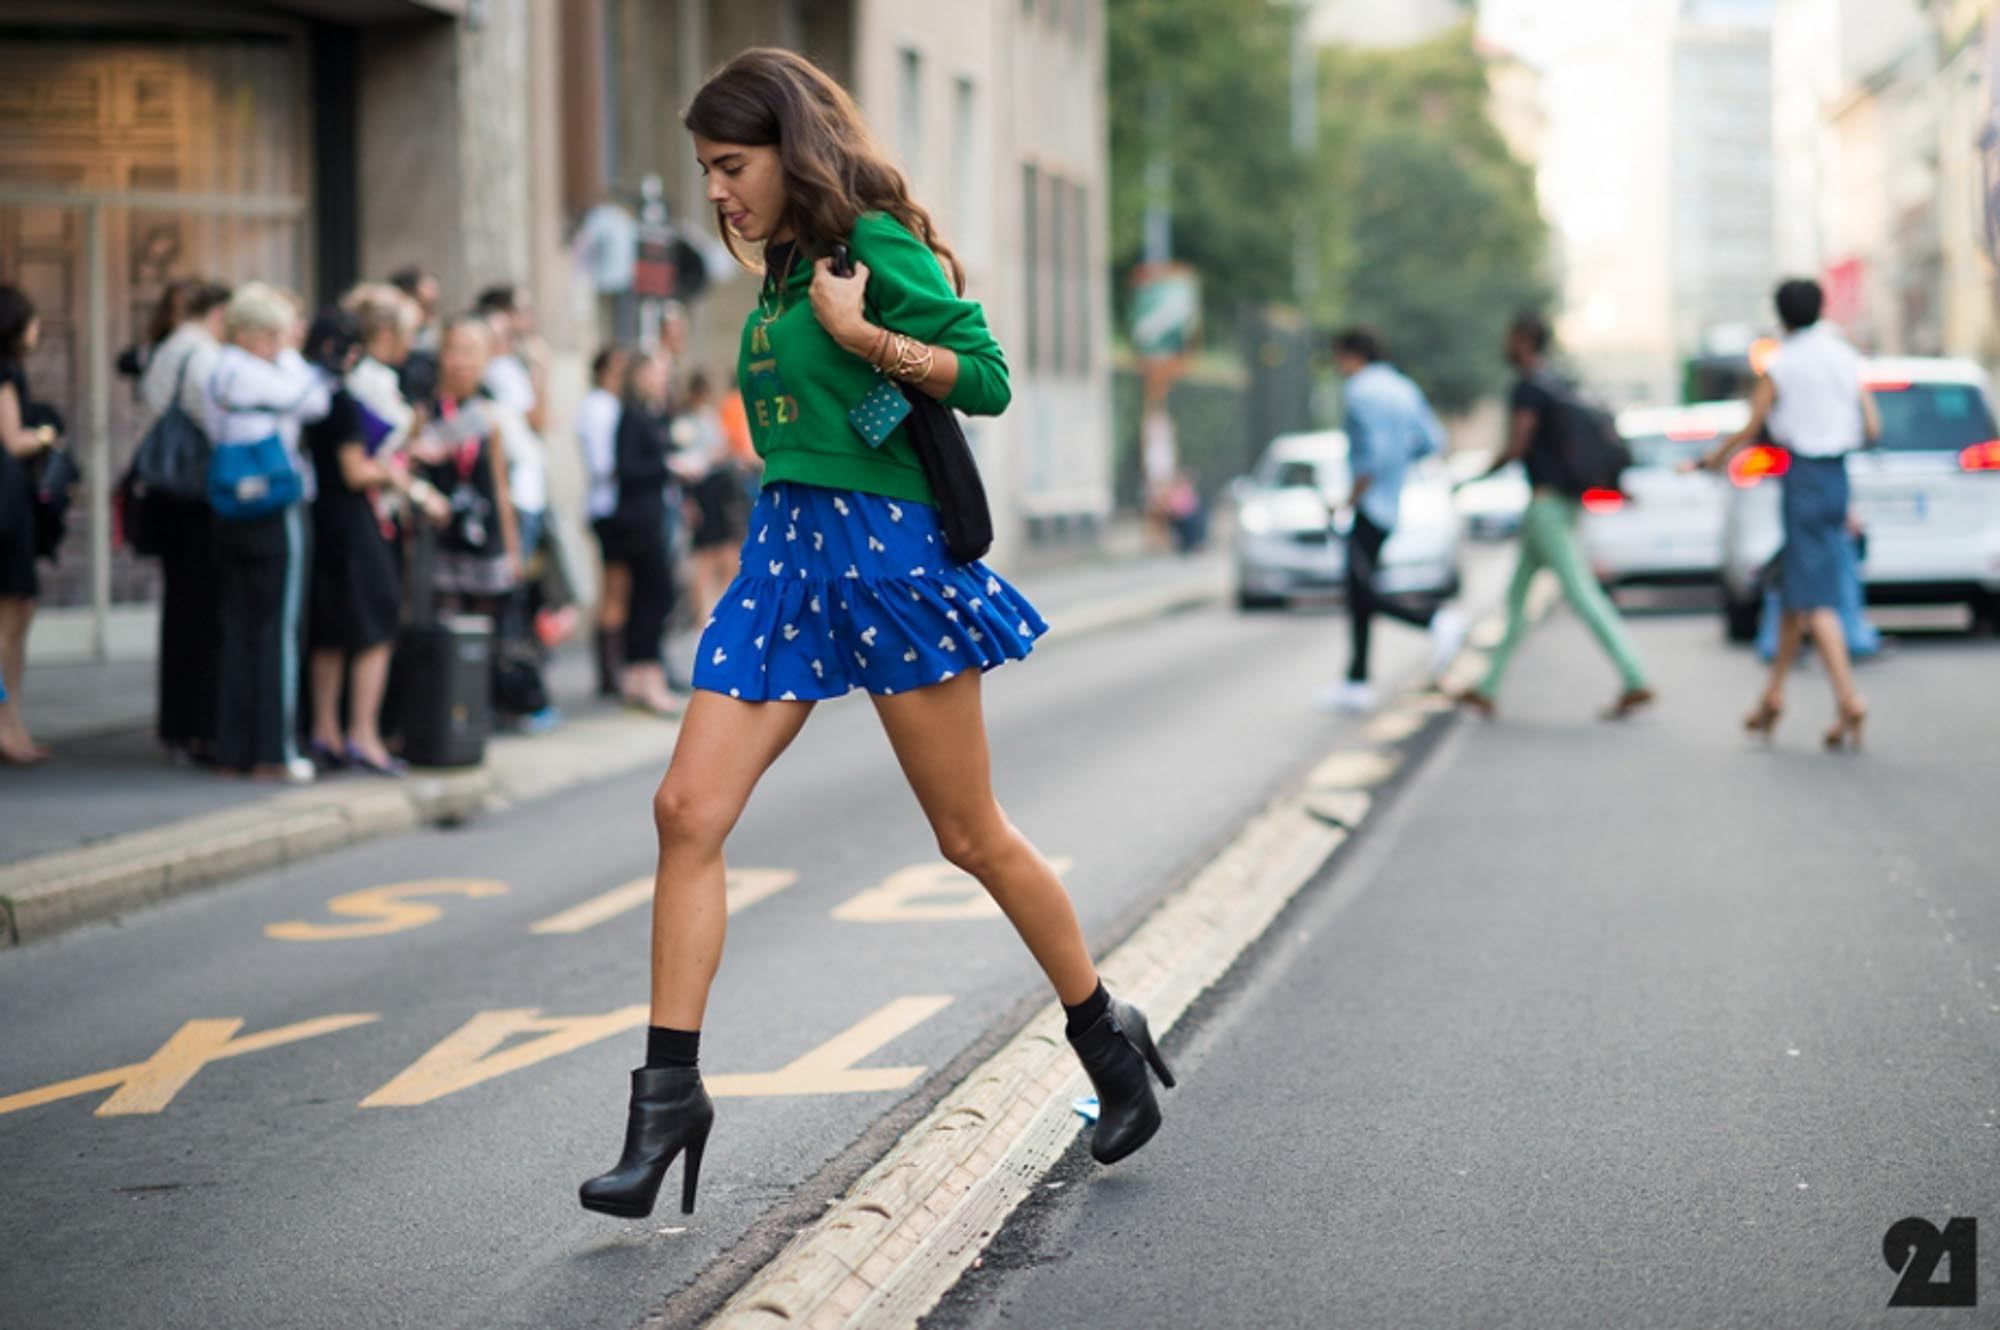 The 6 Ultimate Street Fashion Photographers And Bloggers Ilovehatephotography